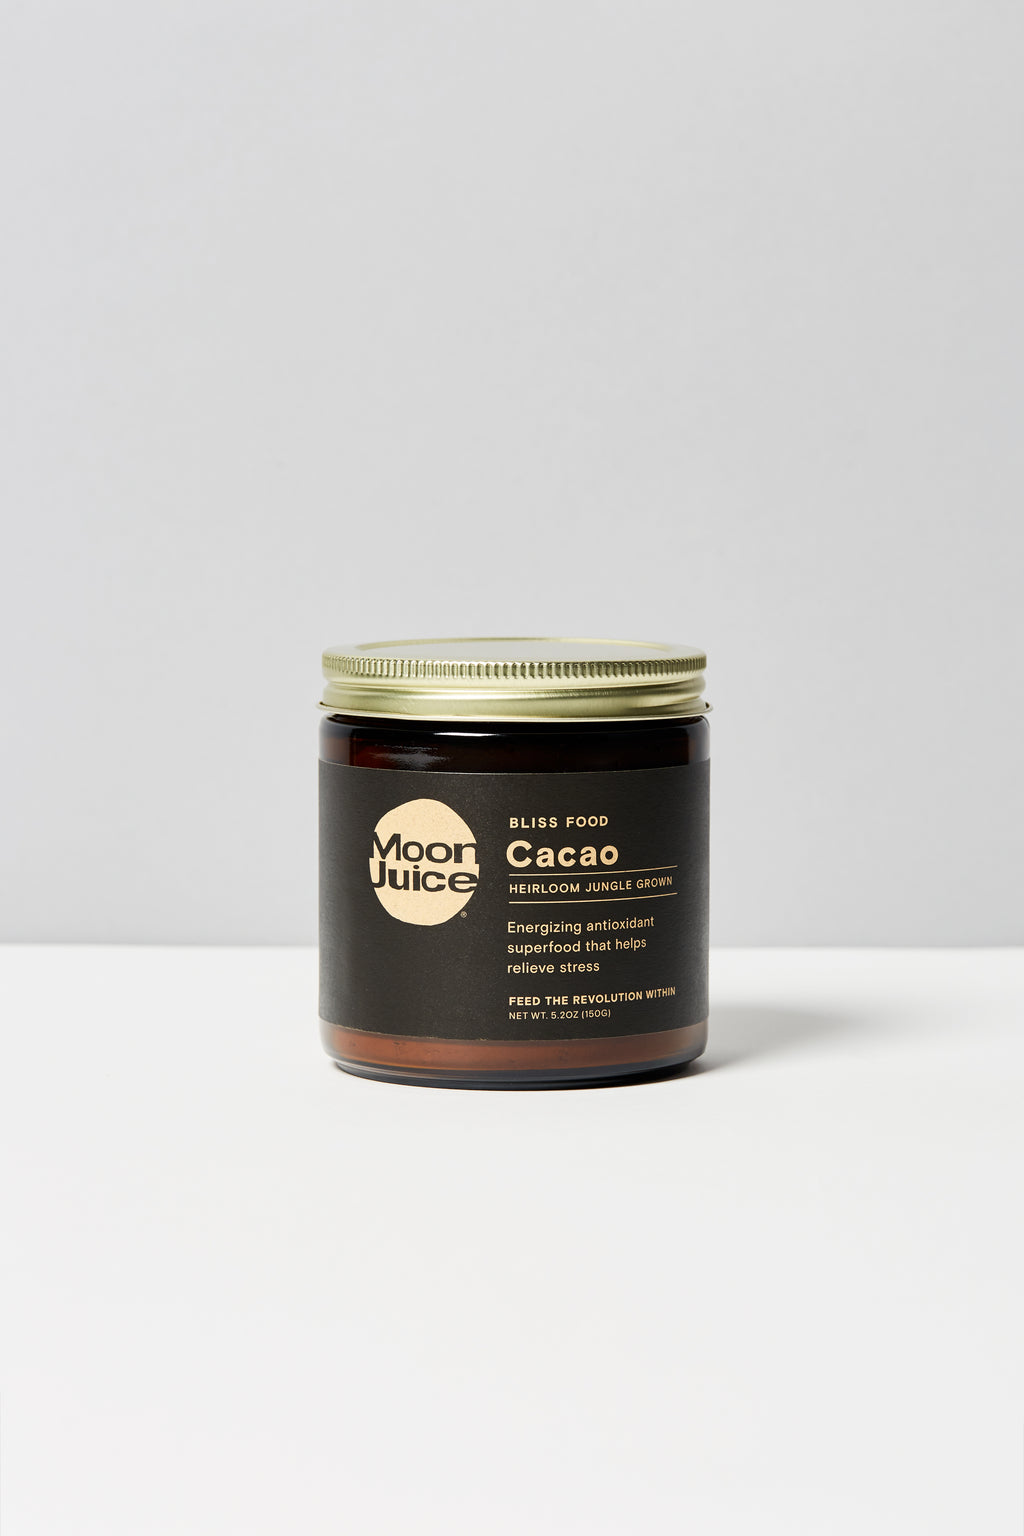 Moon Juice Cacao